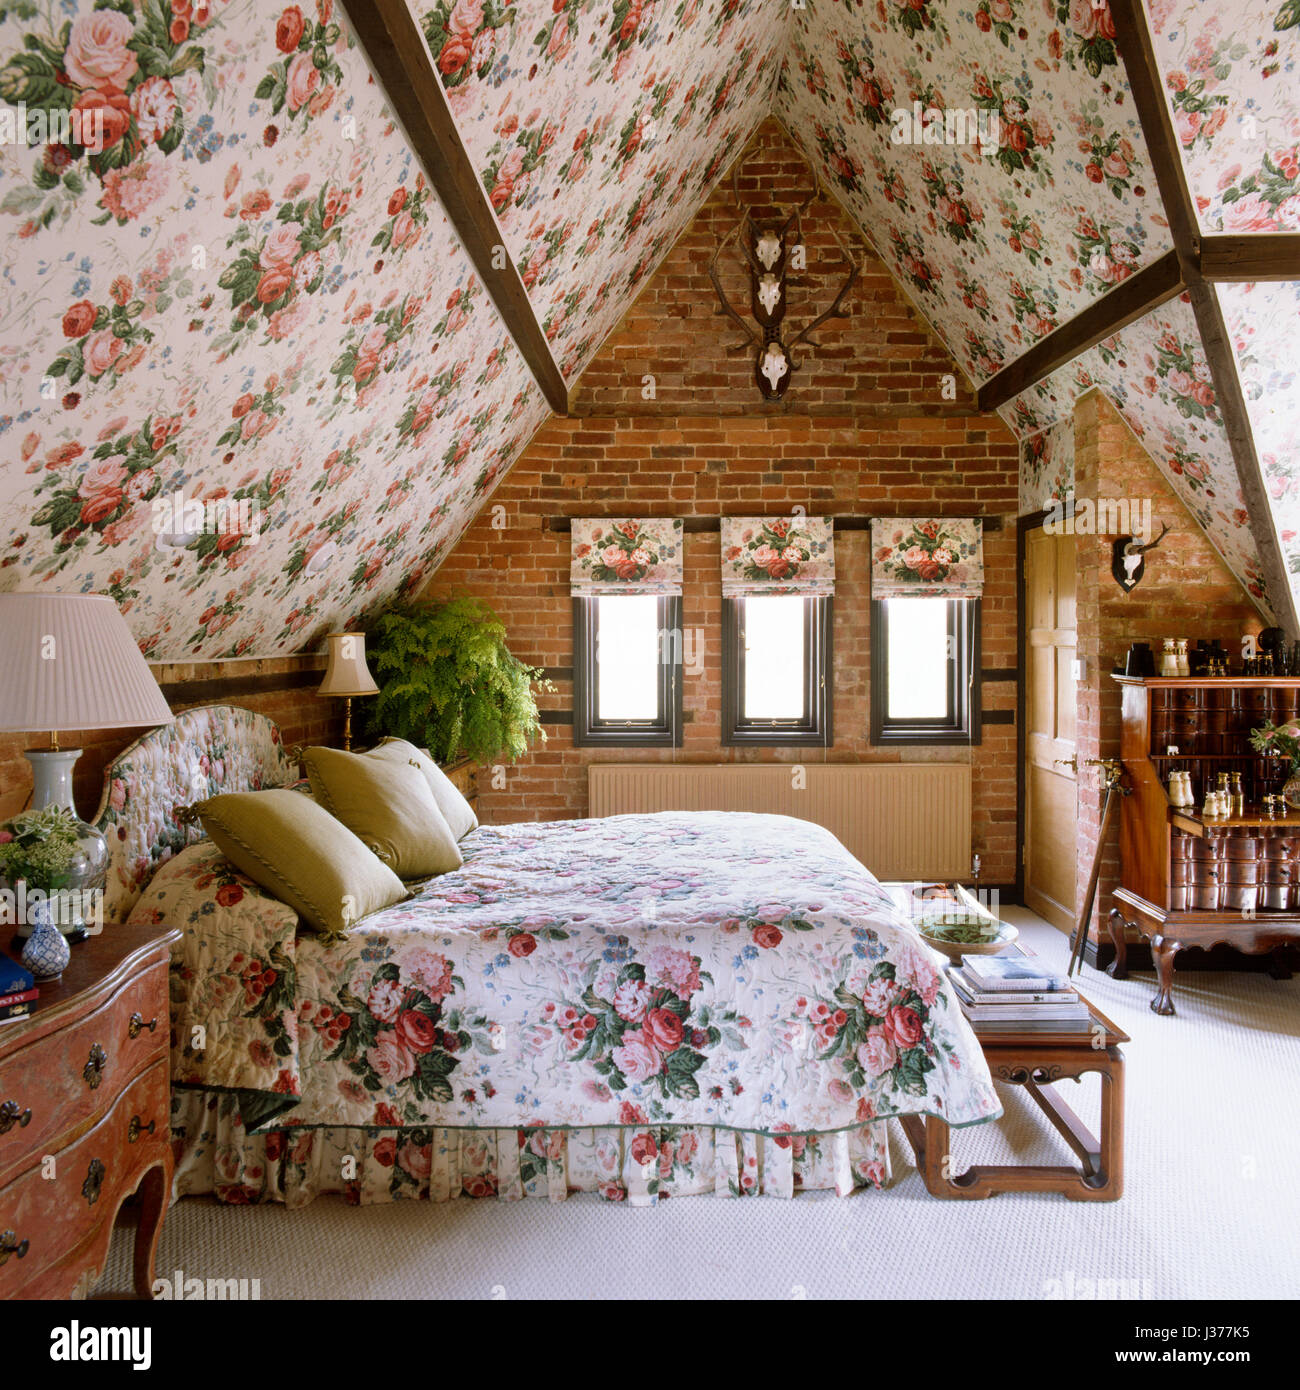 Edwardian Style Bedroom With Floral Patterned Ceiling And